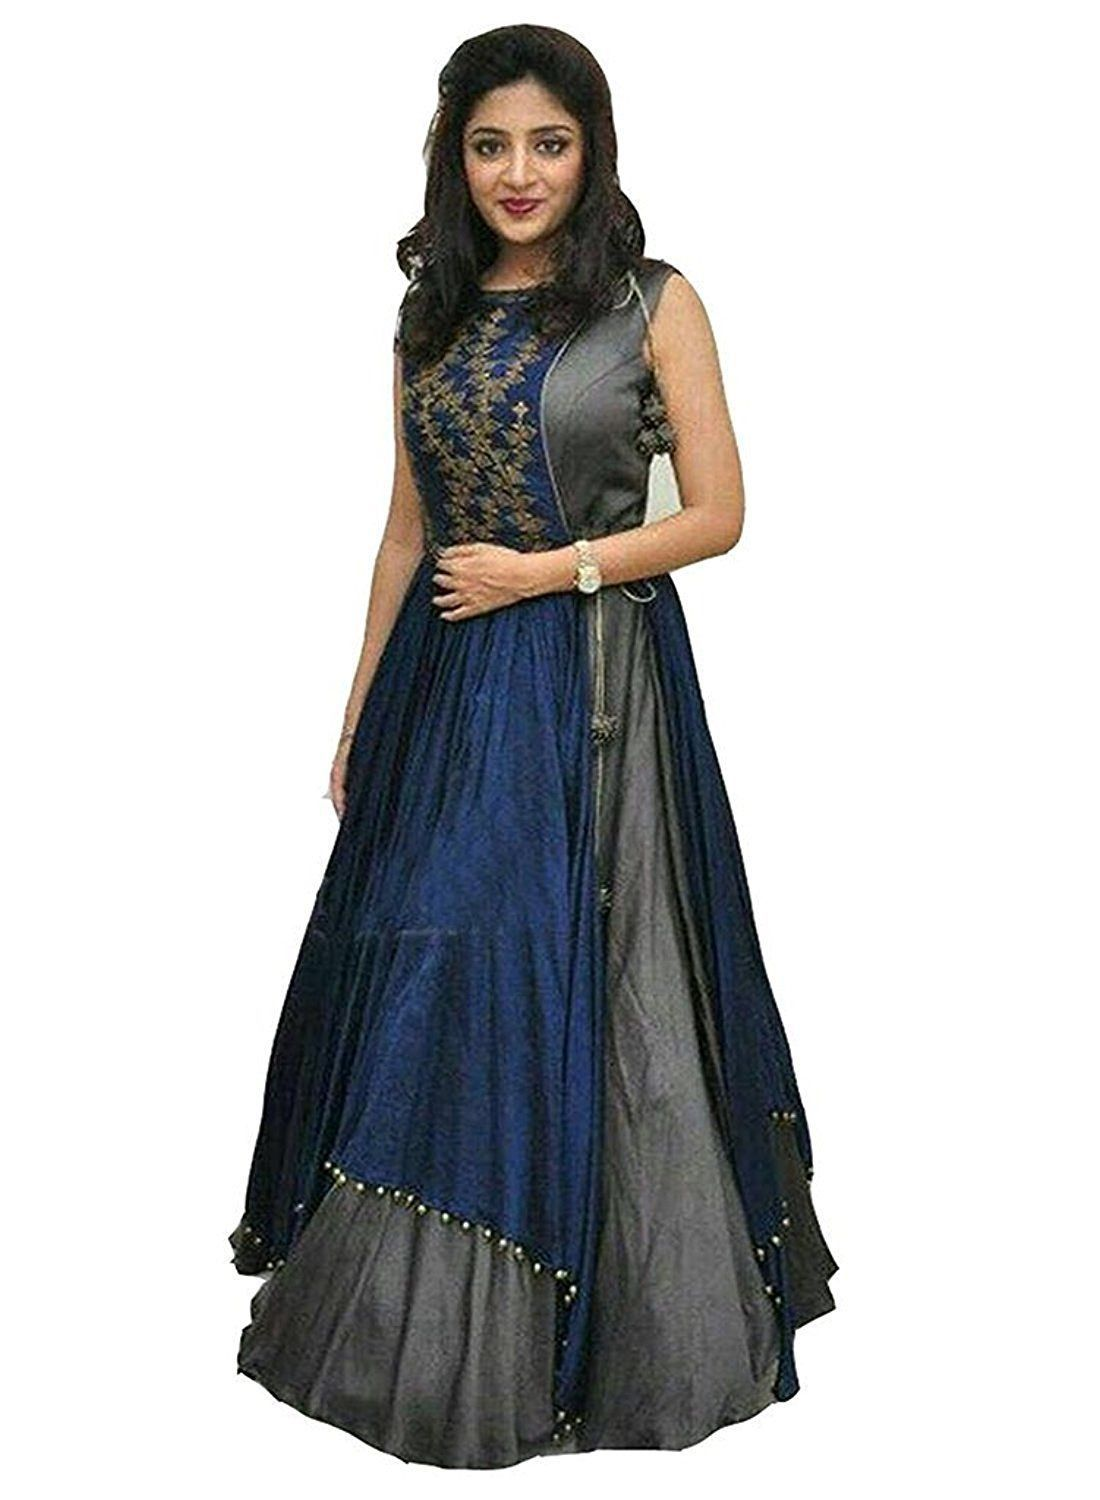 8aebe29d8 ... Anarkali Semi-Stitched Suit - Buy SERENEVA SALES Blue and Grey  Bangalore Silk Anarkali Semi-Stitched Suit Online at Best Prices in India  on Snapdeal